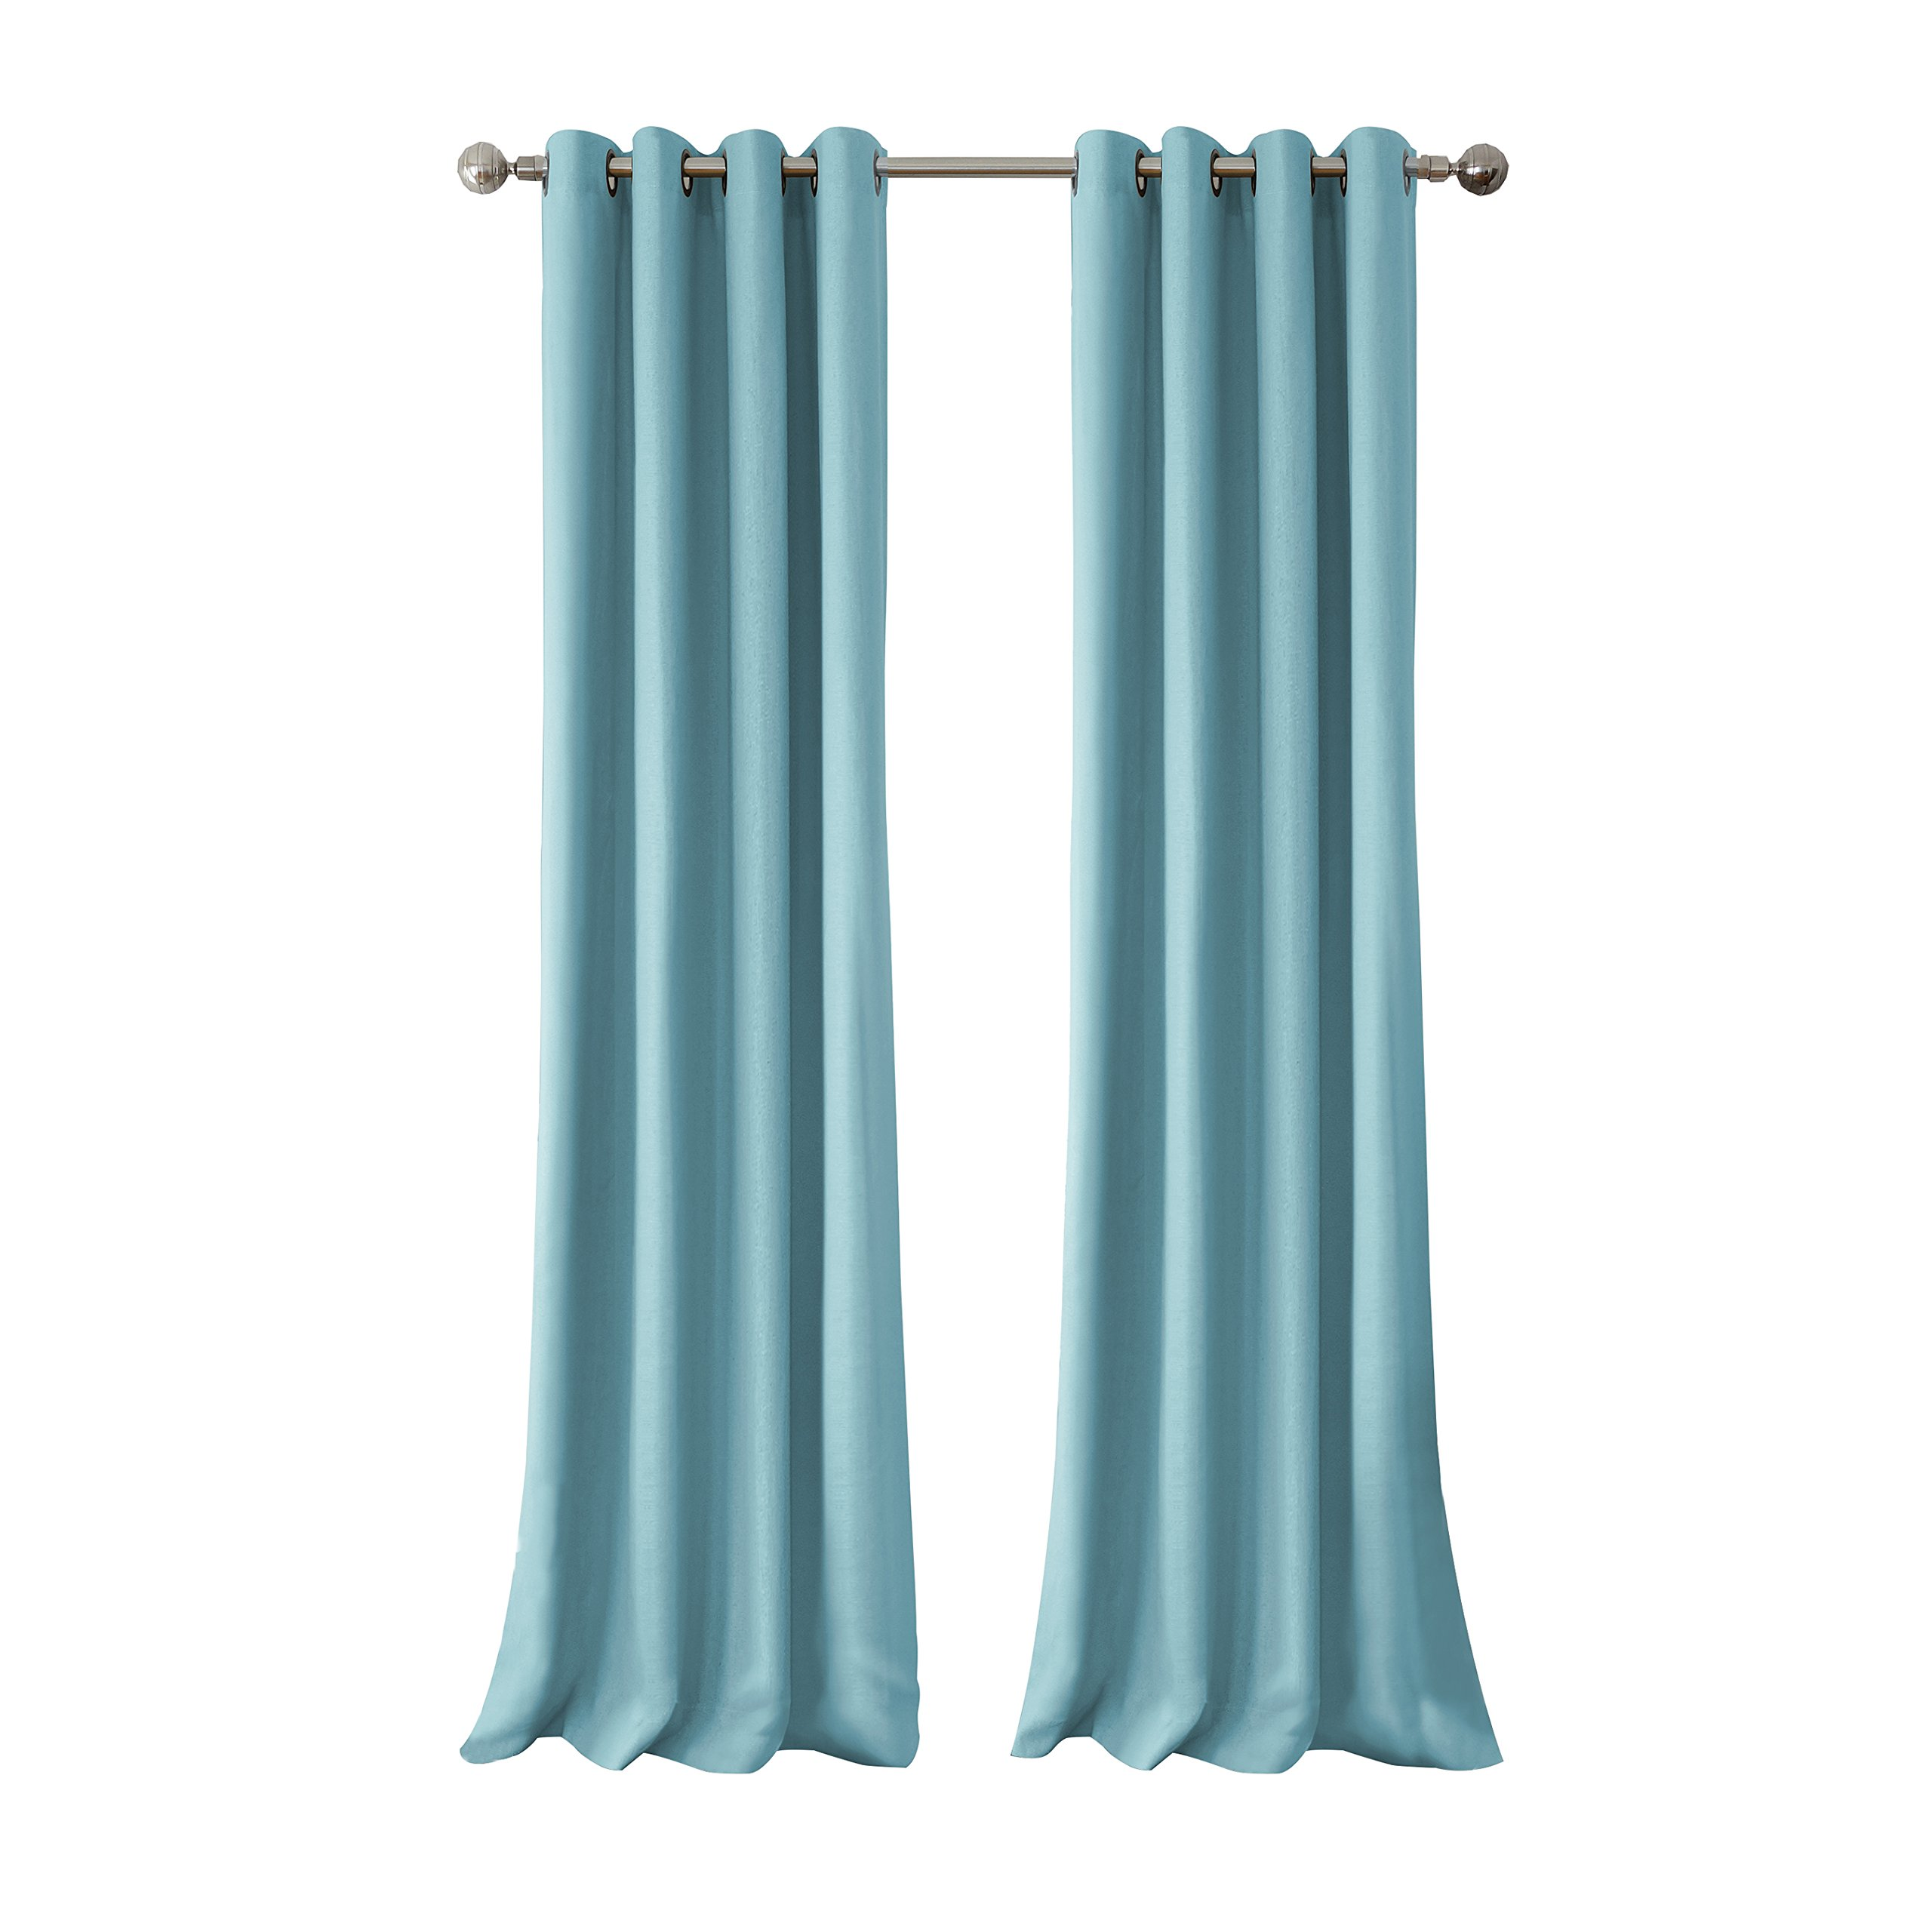 Elrene Home Fashions Connor Indoor/Outdoor Solid Grommet Panel Window Curtain 52'' x 108'' (1), Turquoise by Elrene (Image #3)